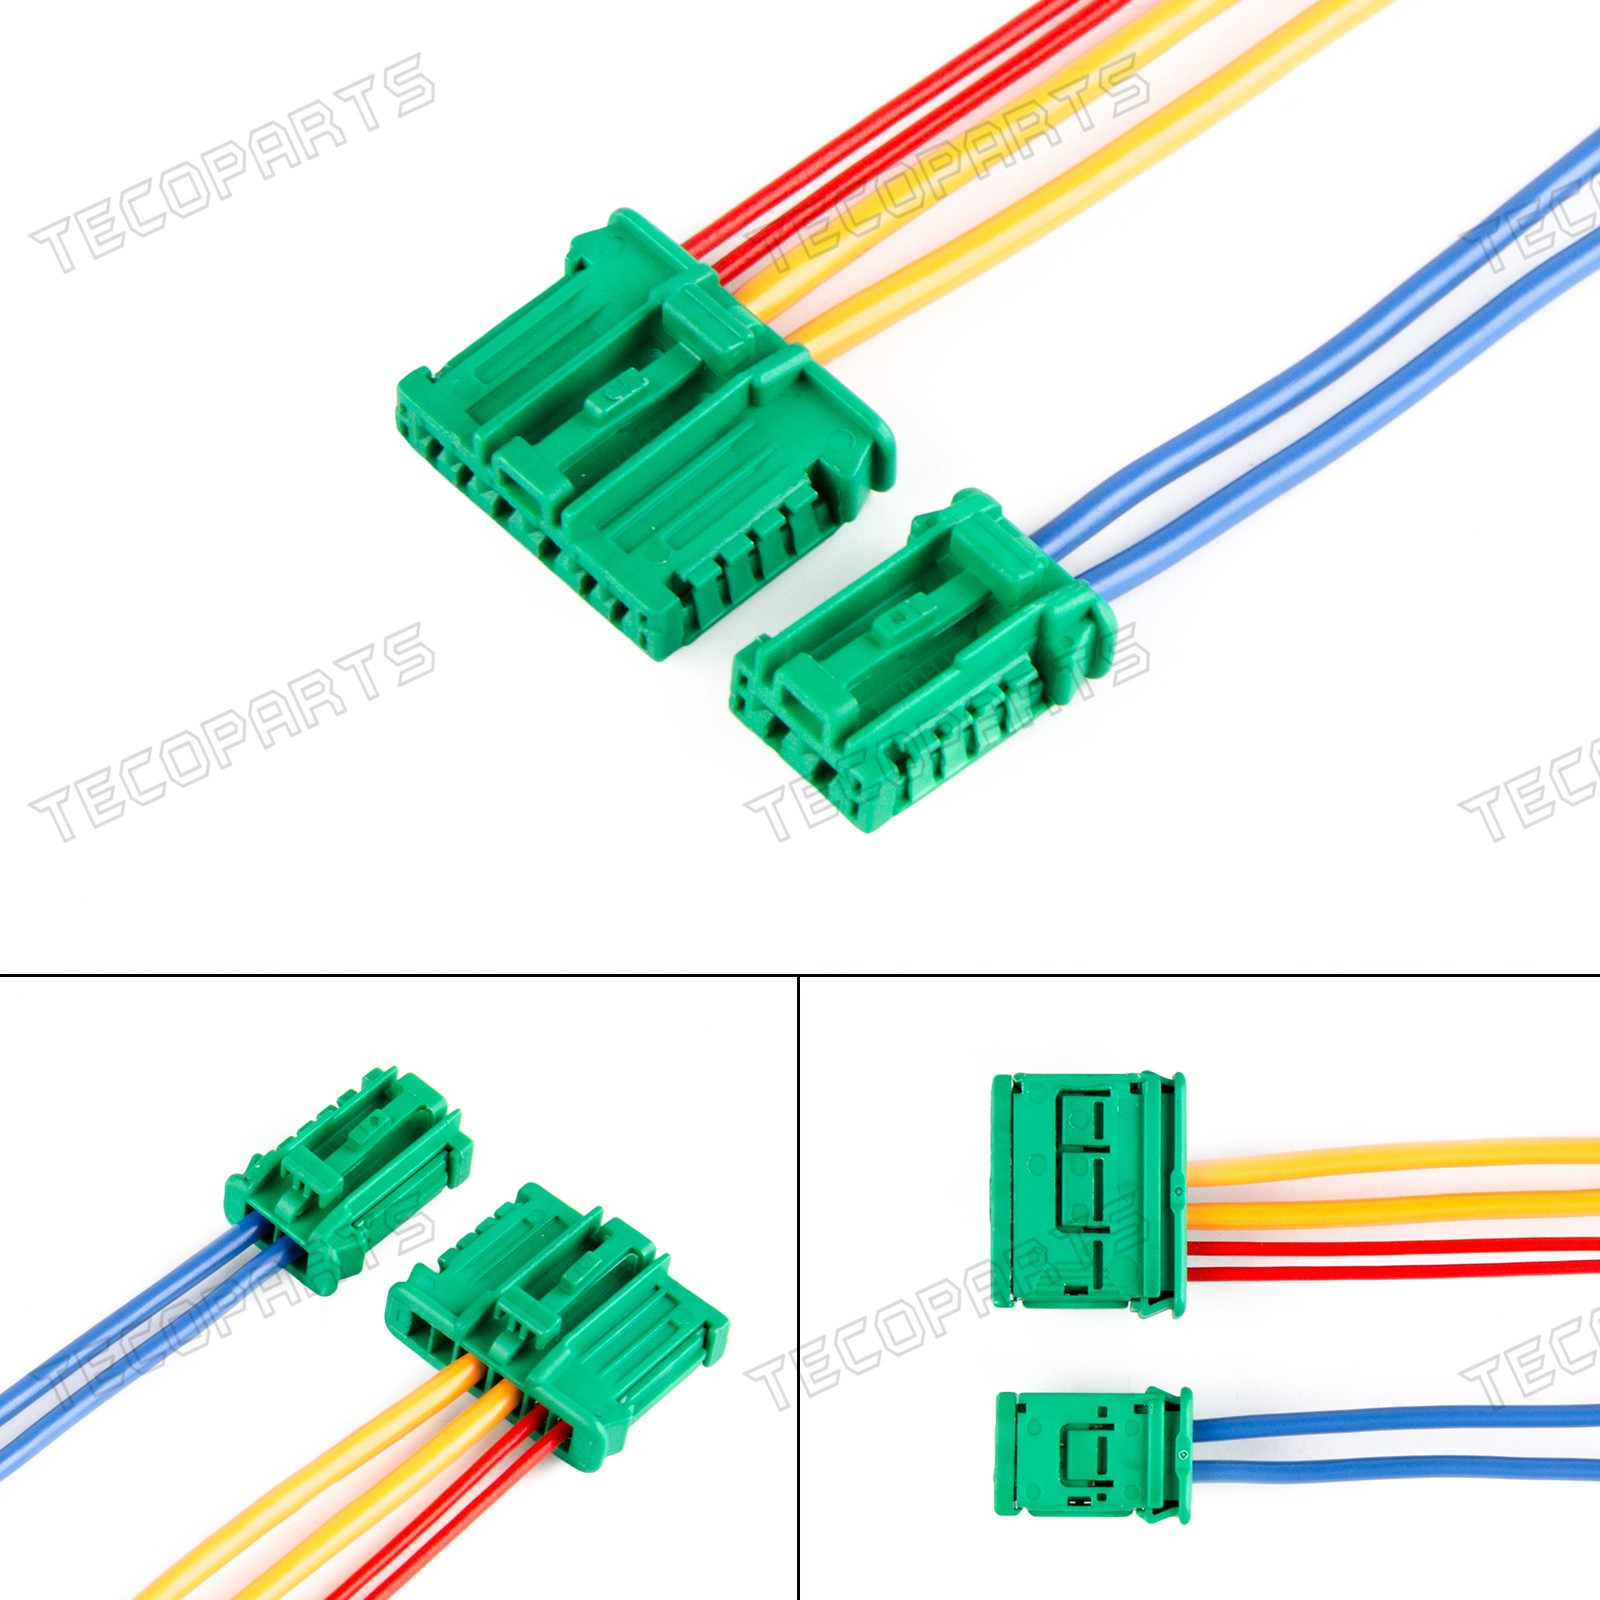 Heater Blower Resistor Plugs Repair Wiring Harness For Peugeot Citroen  Renault